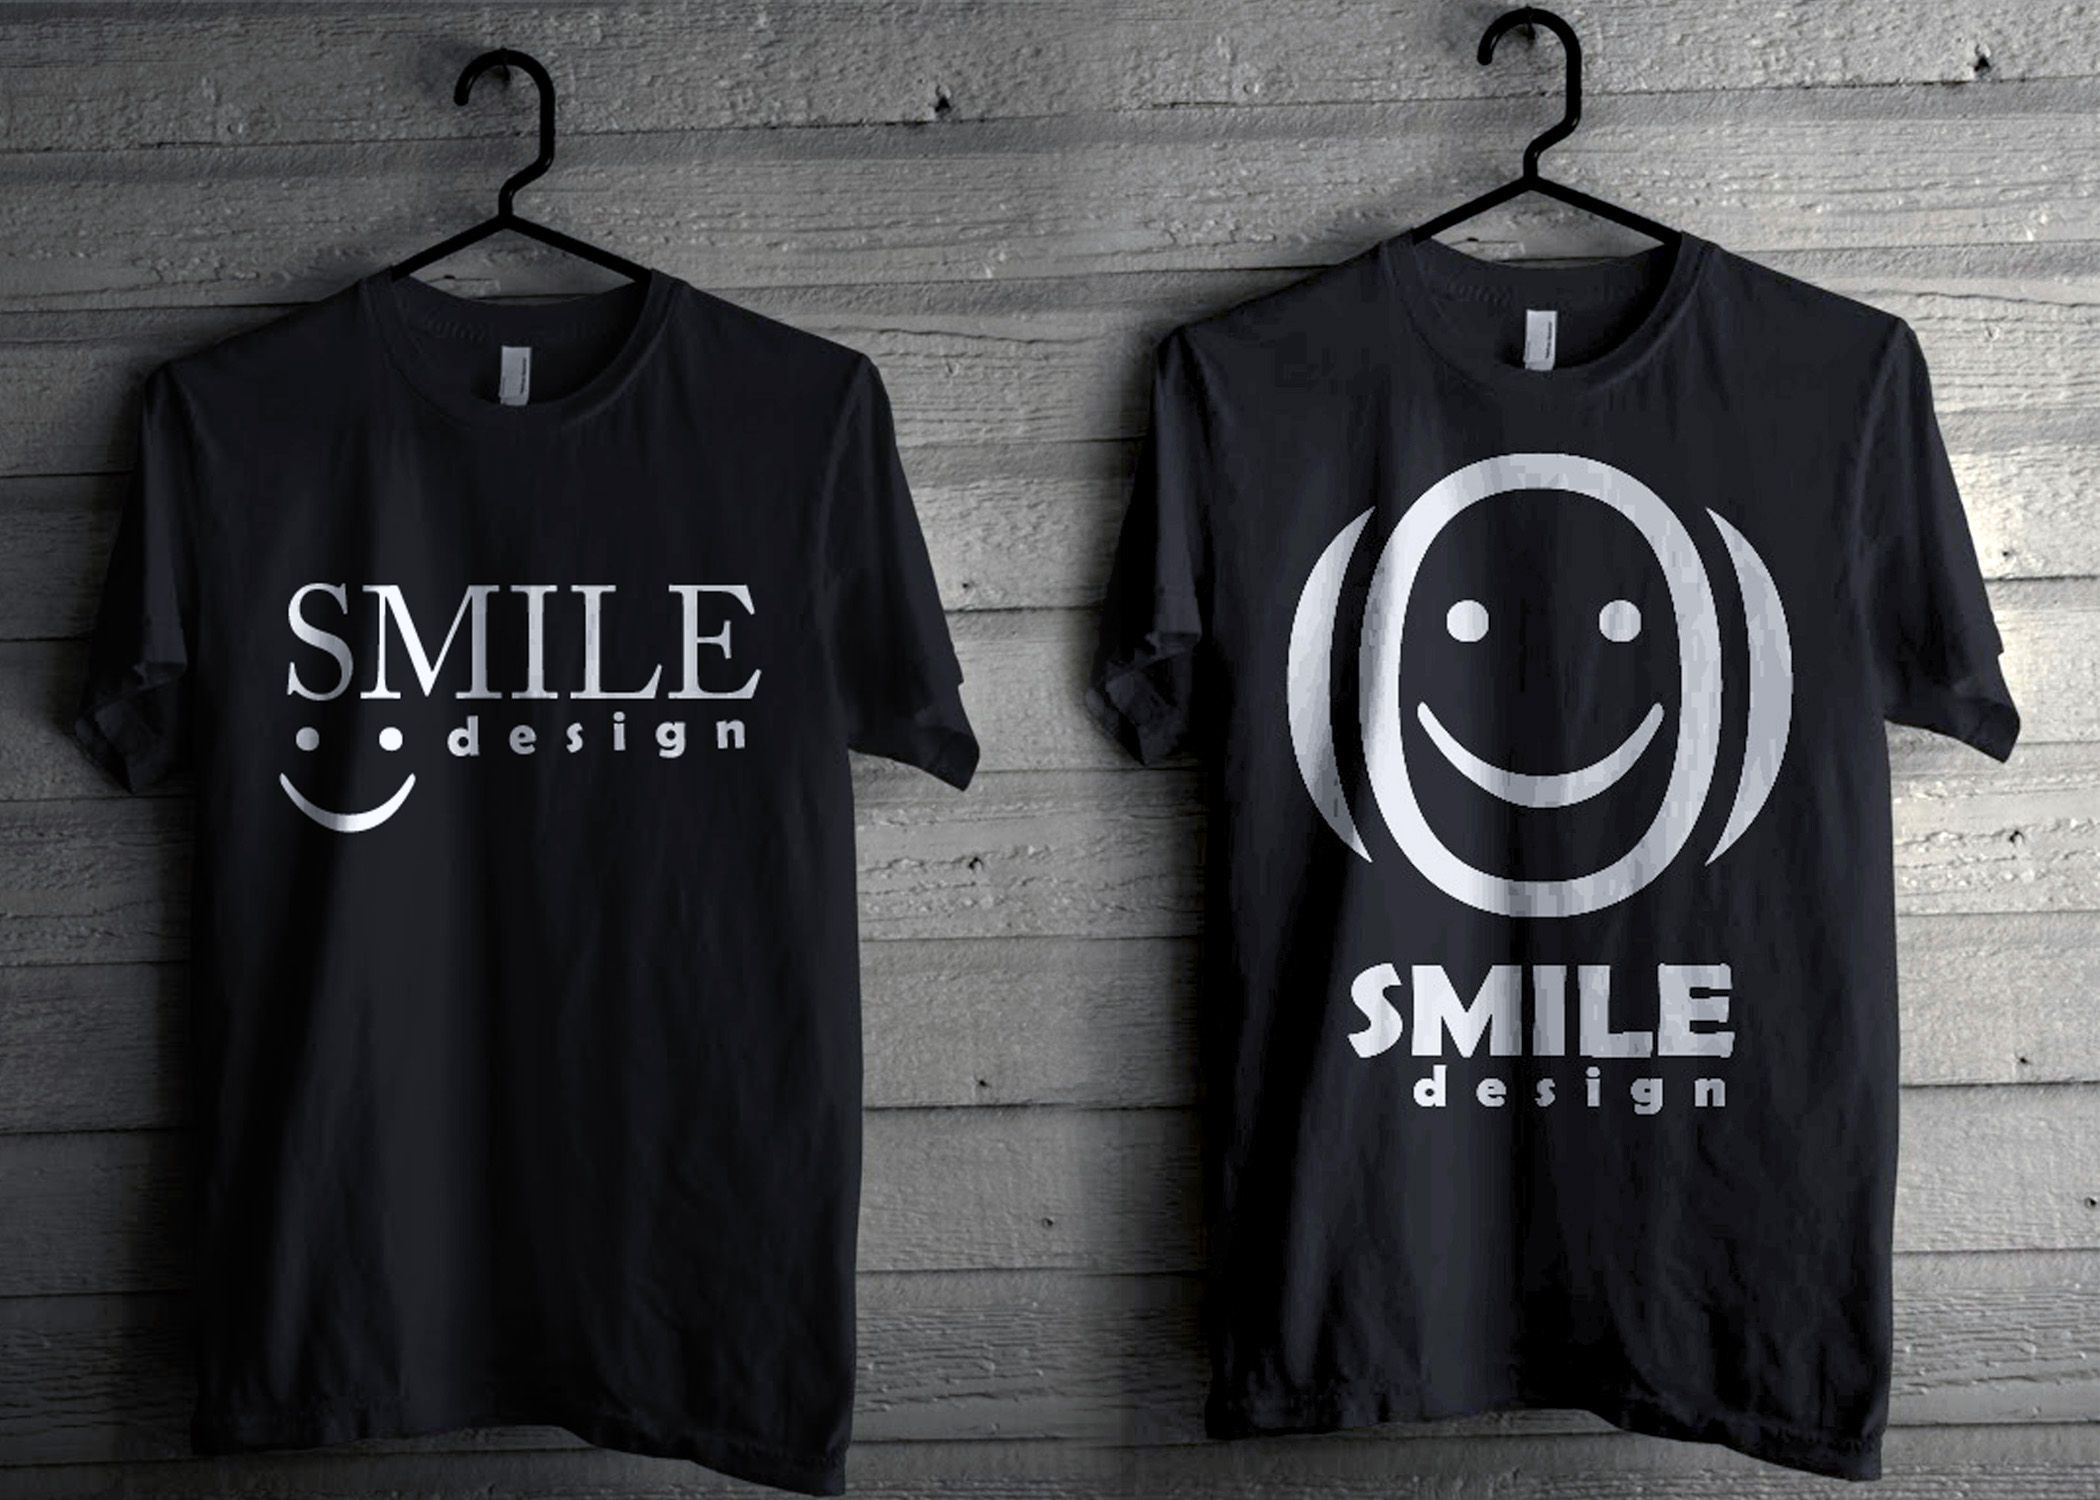 Shirt design examples - I Can Design An Awesome Classy T Shirt Design For You I Will Add Your Design To Front Or Back Of T Shirt Using Your Logo Or Text